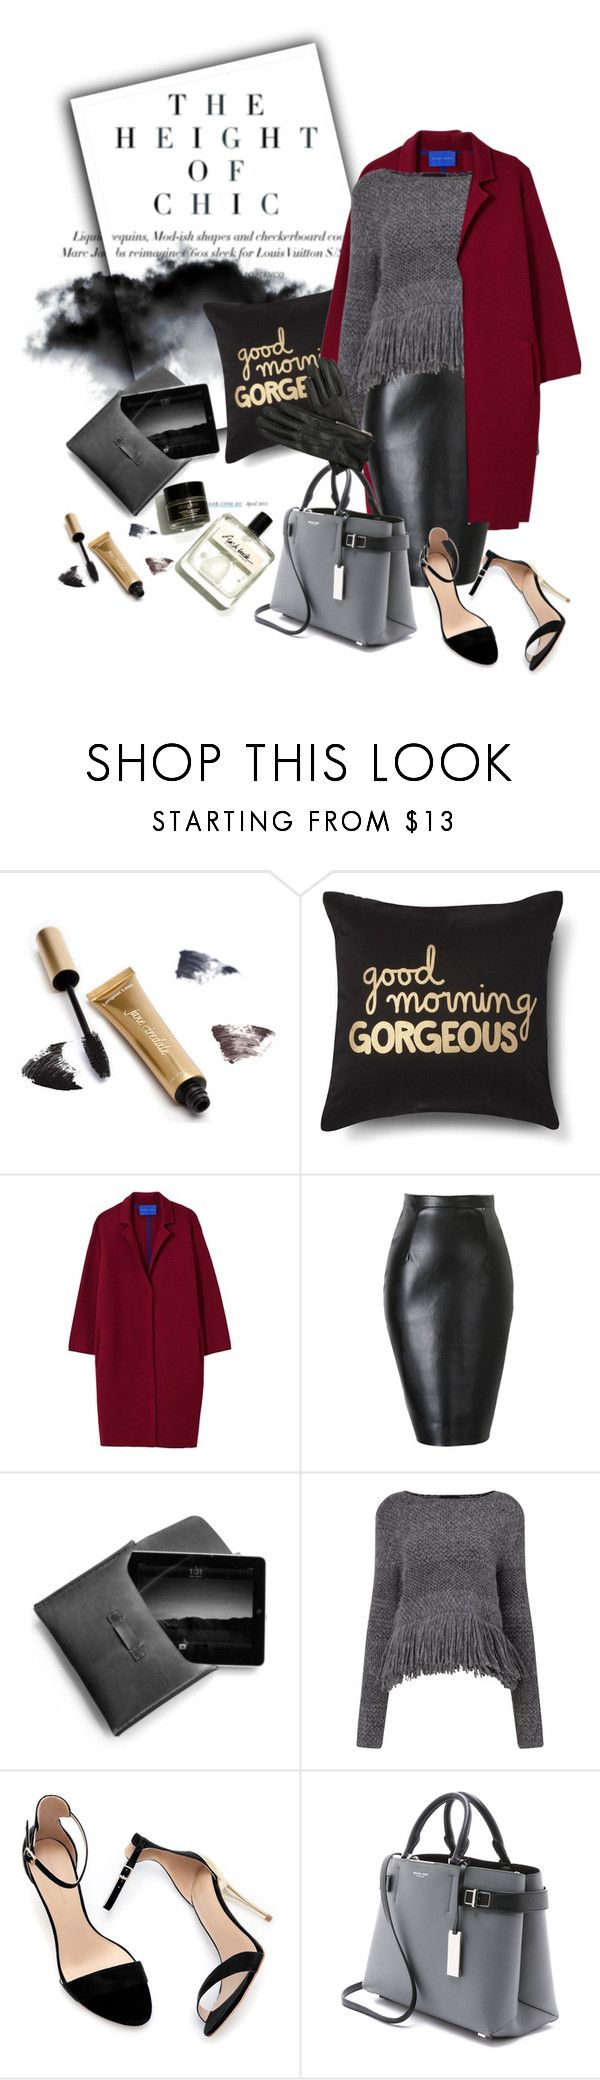 """Look fab"" by gulayunal ❤ liked on Polyvore featuring Jane Iredale, Xhilaration, Winser London, Rachel Comey, Zara, Michael Kors and Oasis"